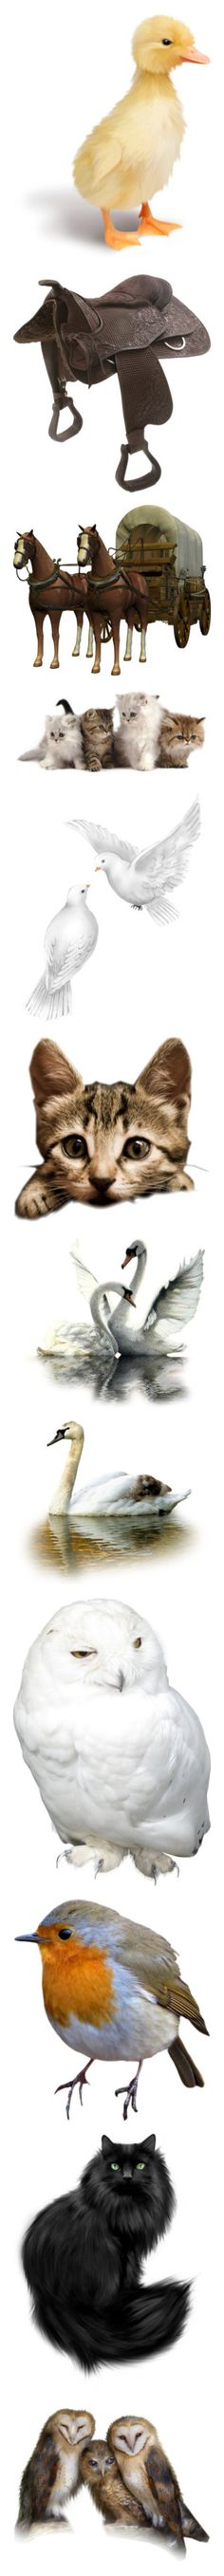 """Animals"" by katlittlestar ❤ liked on Polyvore featuring animals, easter, birds, ducks, backgrounds, horses, farm, western, saddles and pets"